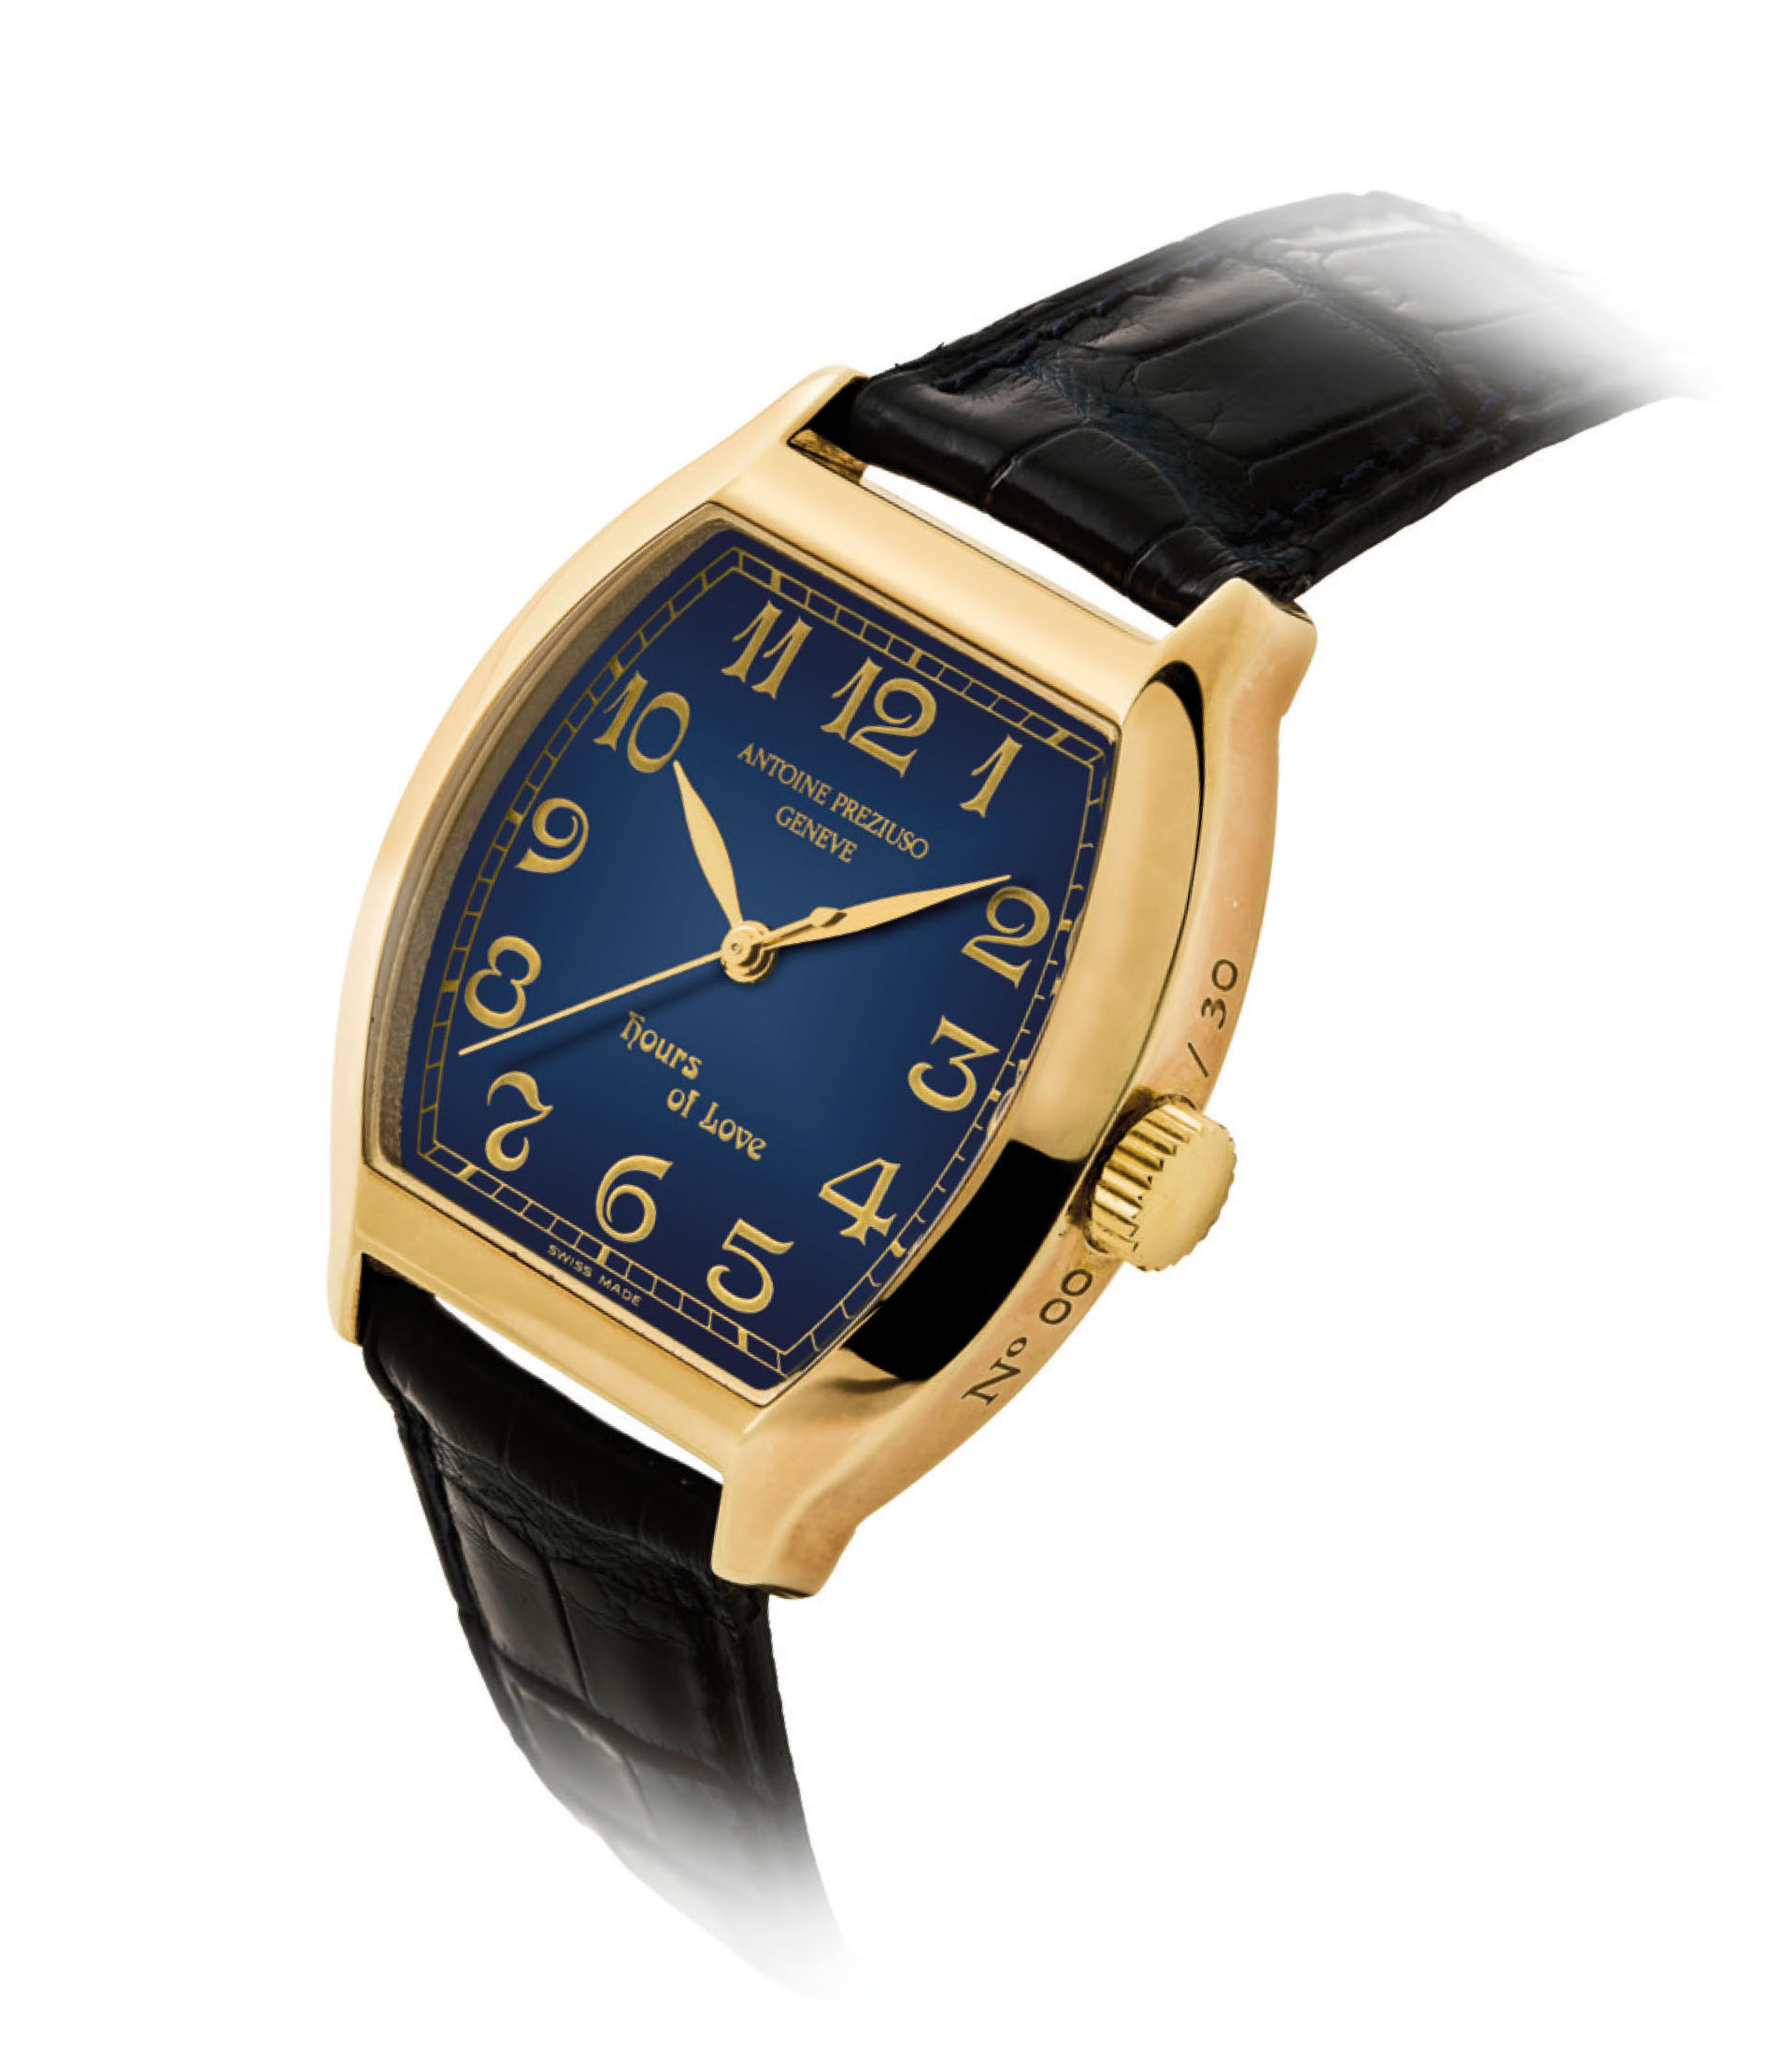 ANTOINE PREZIUSO. AN 18K GOLD LIMITED EDITION TONNEAU-SHAPED WRISTWATCH WITH SWEEP CENTRE SECONDS AND CONCEALED EROTIC AUTOMATON